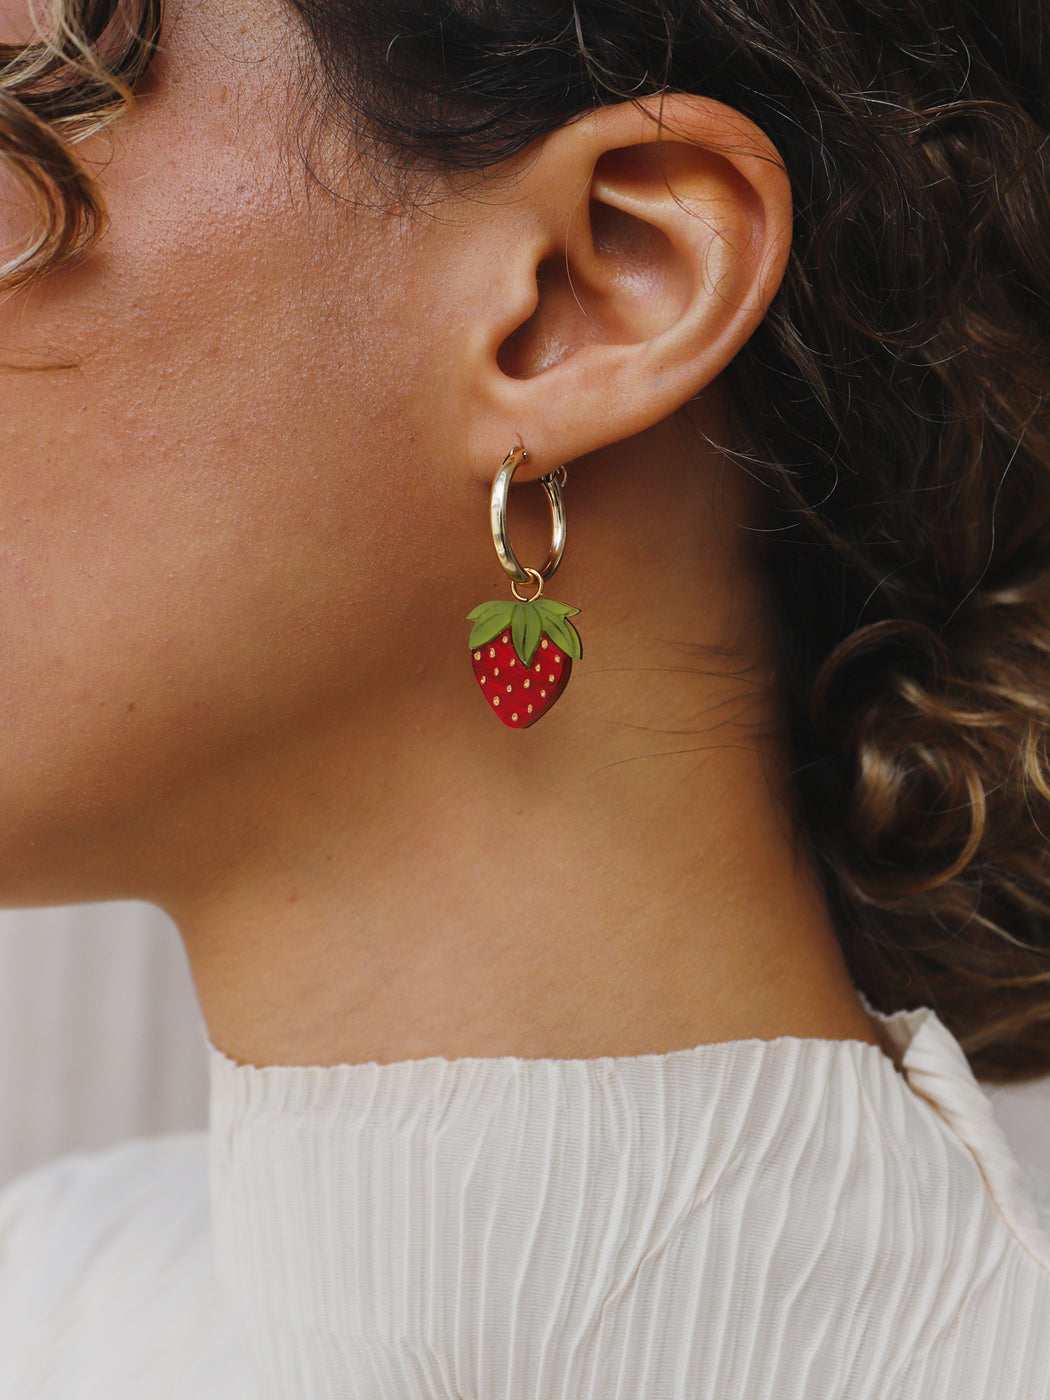 Mini strawberry earrings made from acrylic and wood with 14k gold-filled hoops. Statement jewellery handmade in the U.K. by Wolf & Moon.